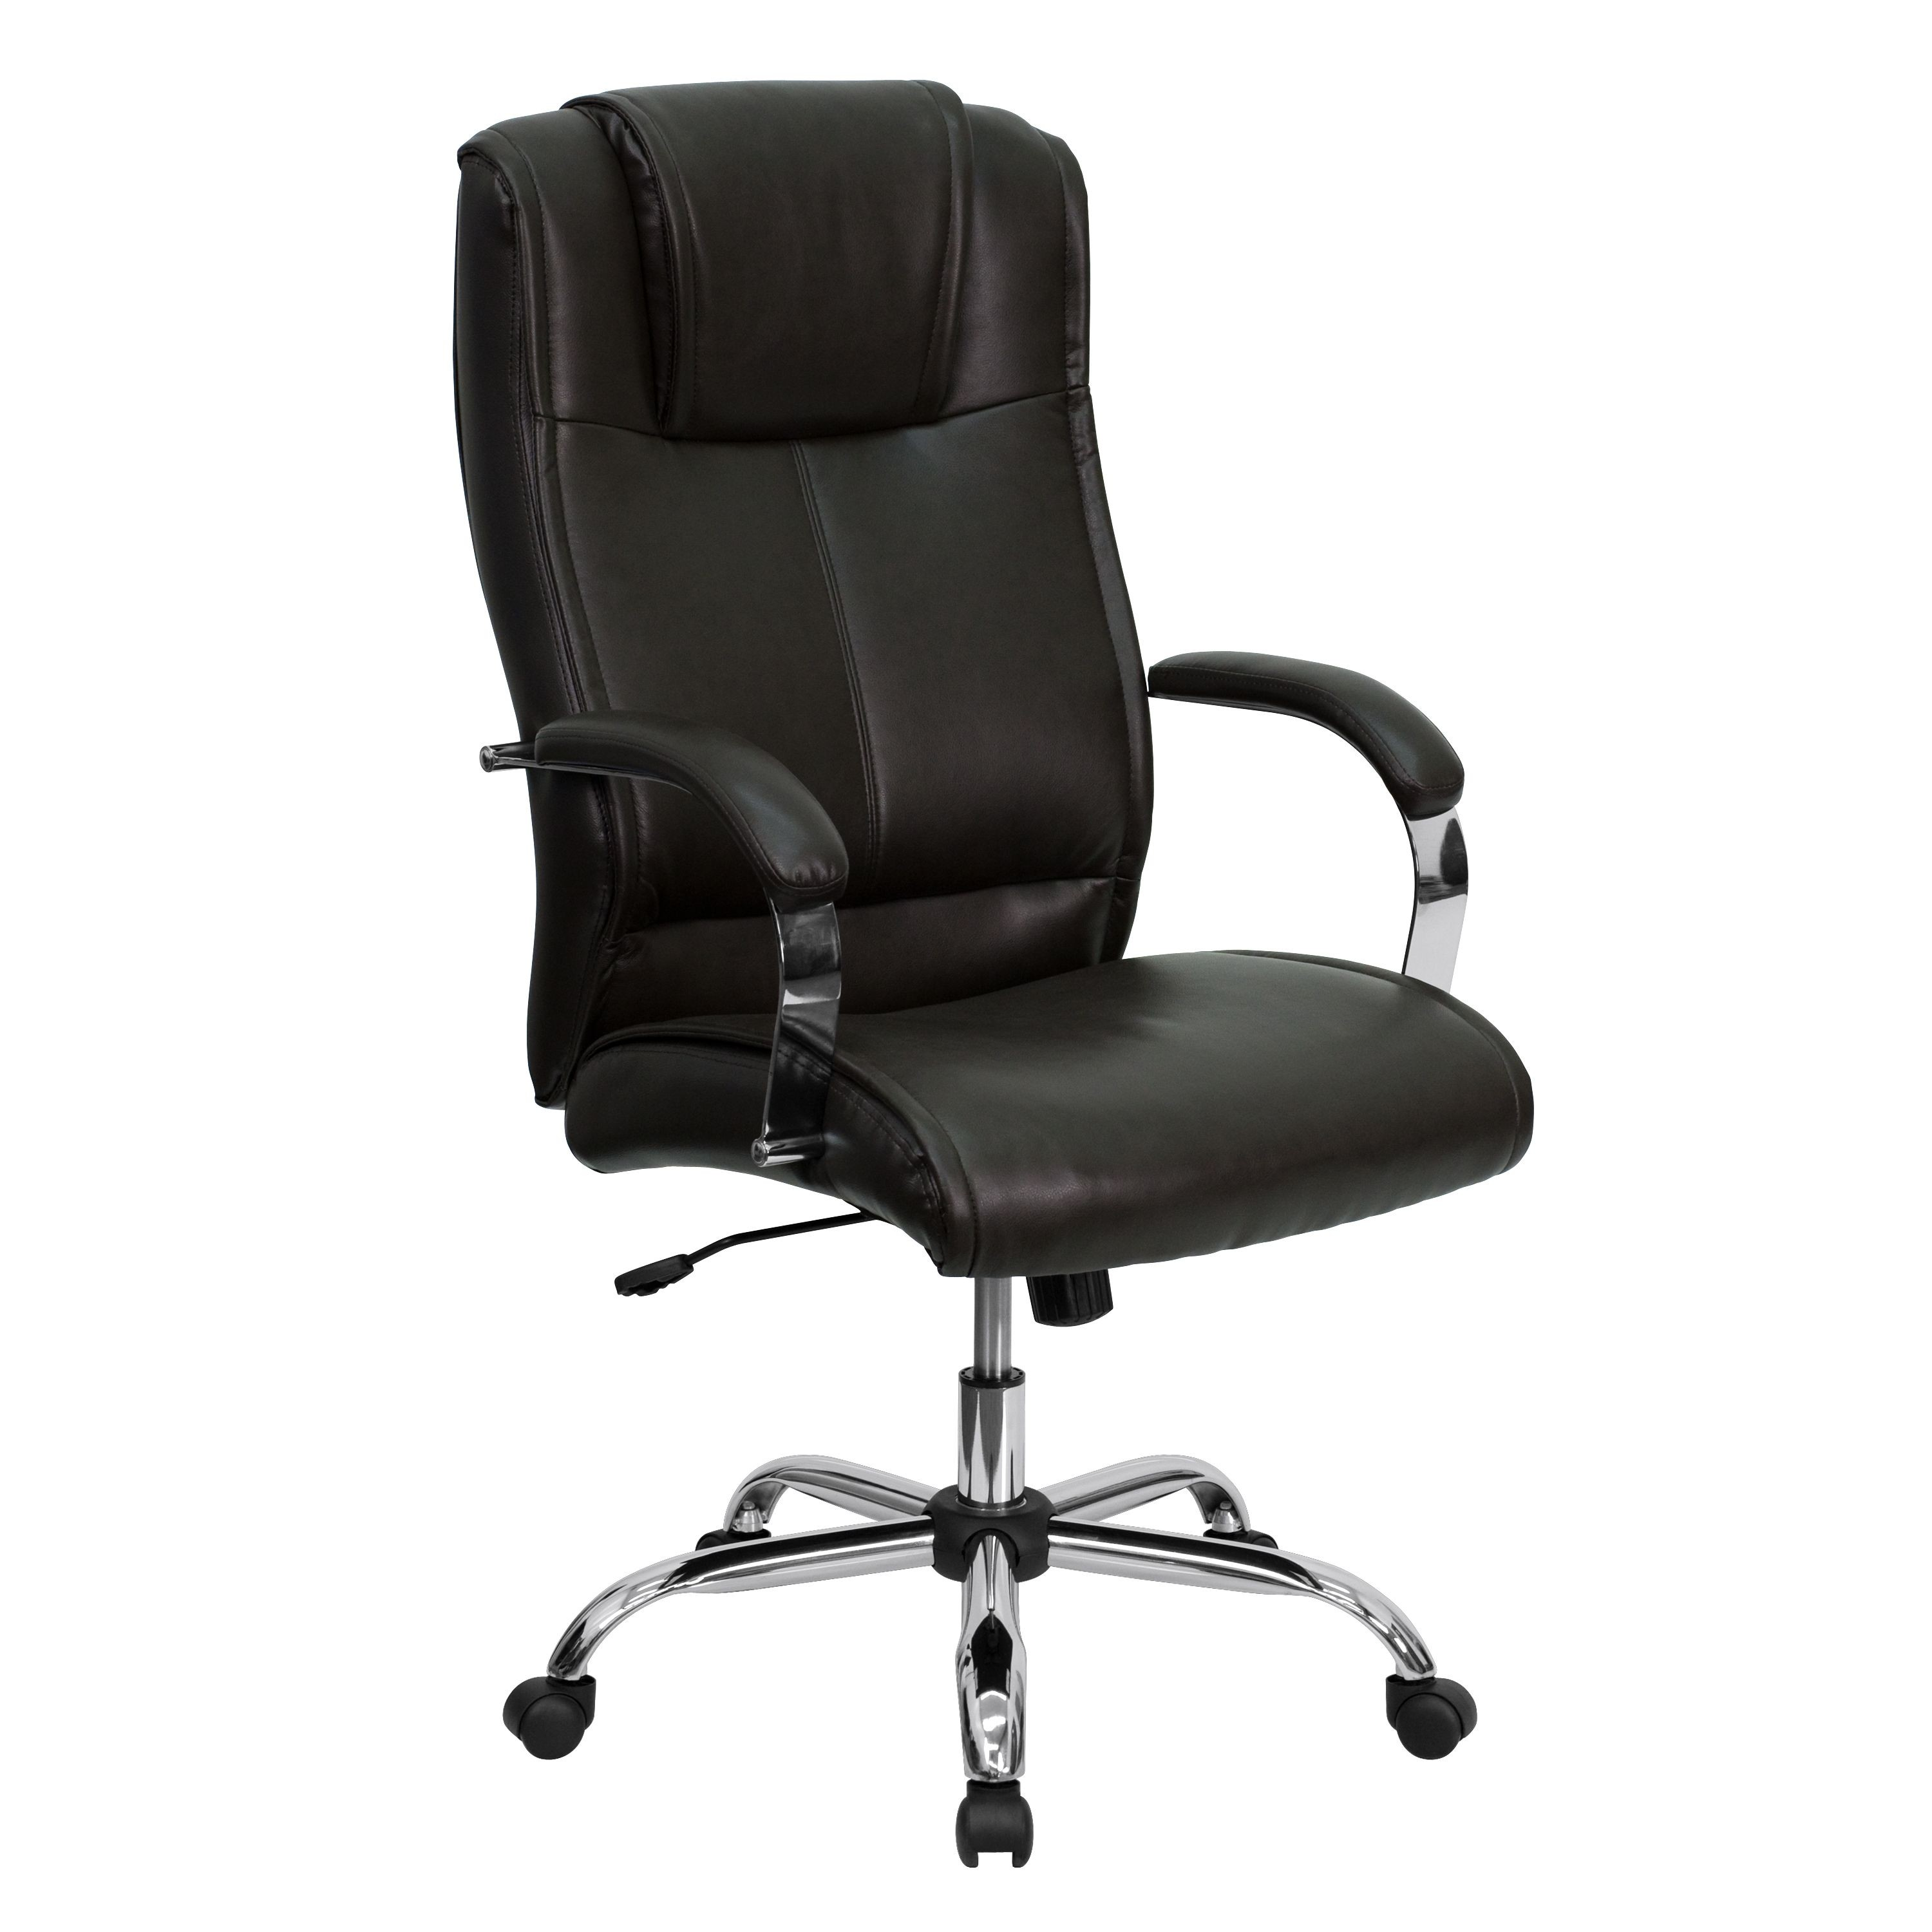 Espresso Brown Leather High Back Executive Office Chair with stainless steel frame